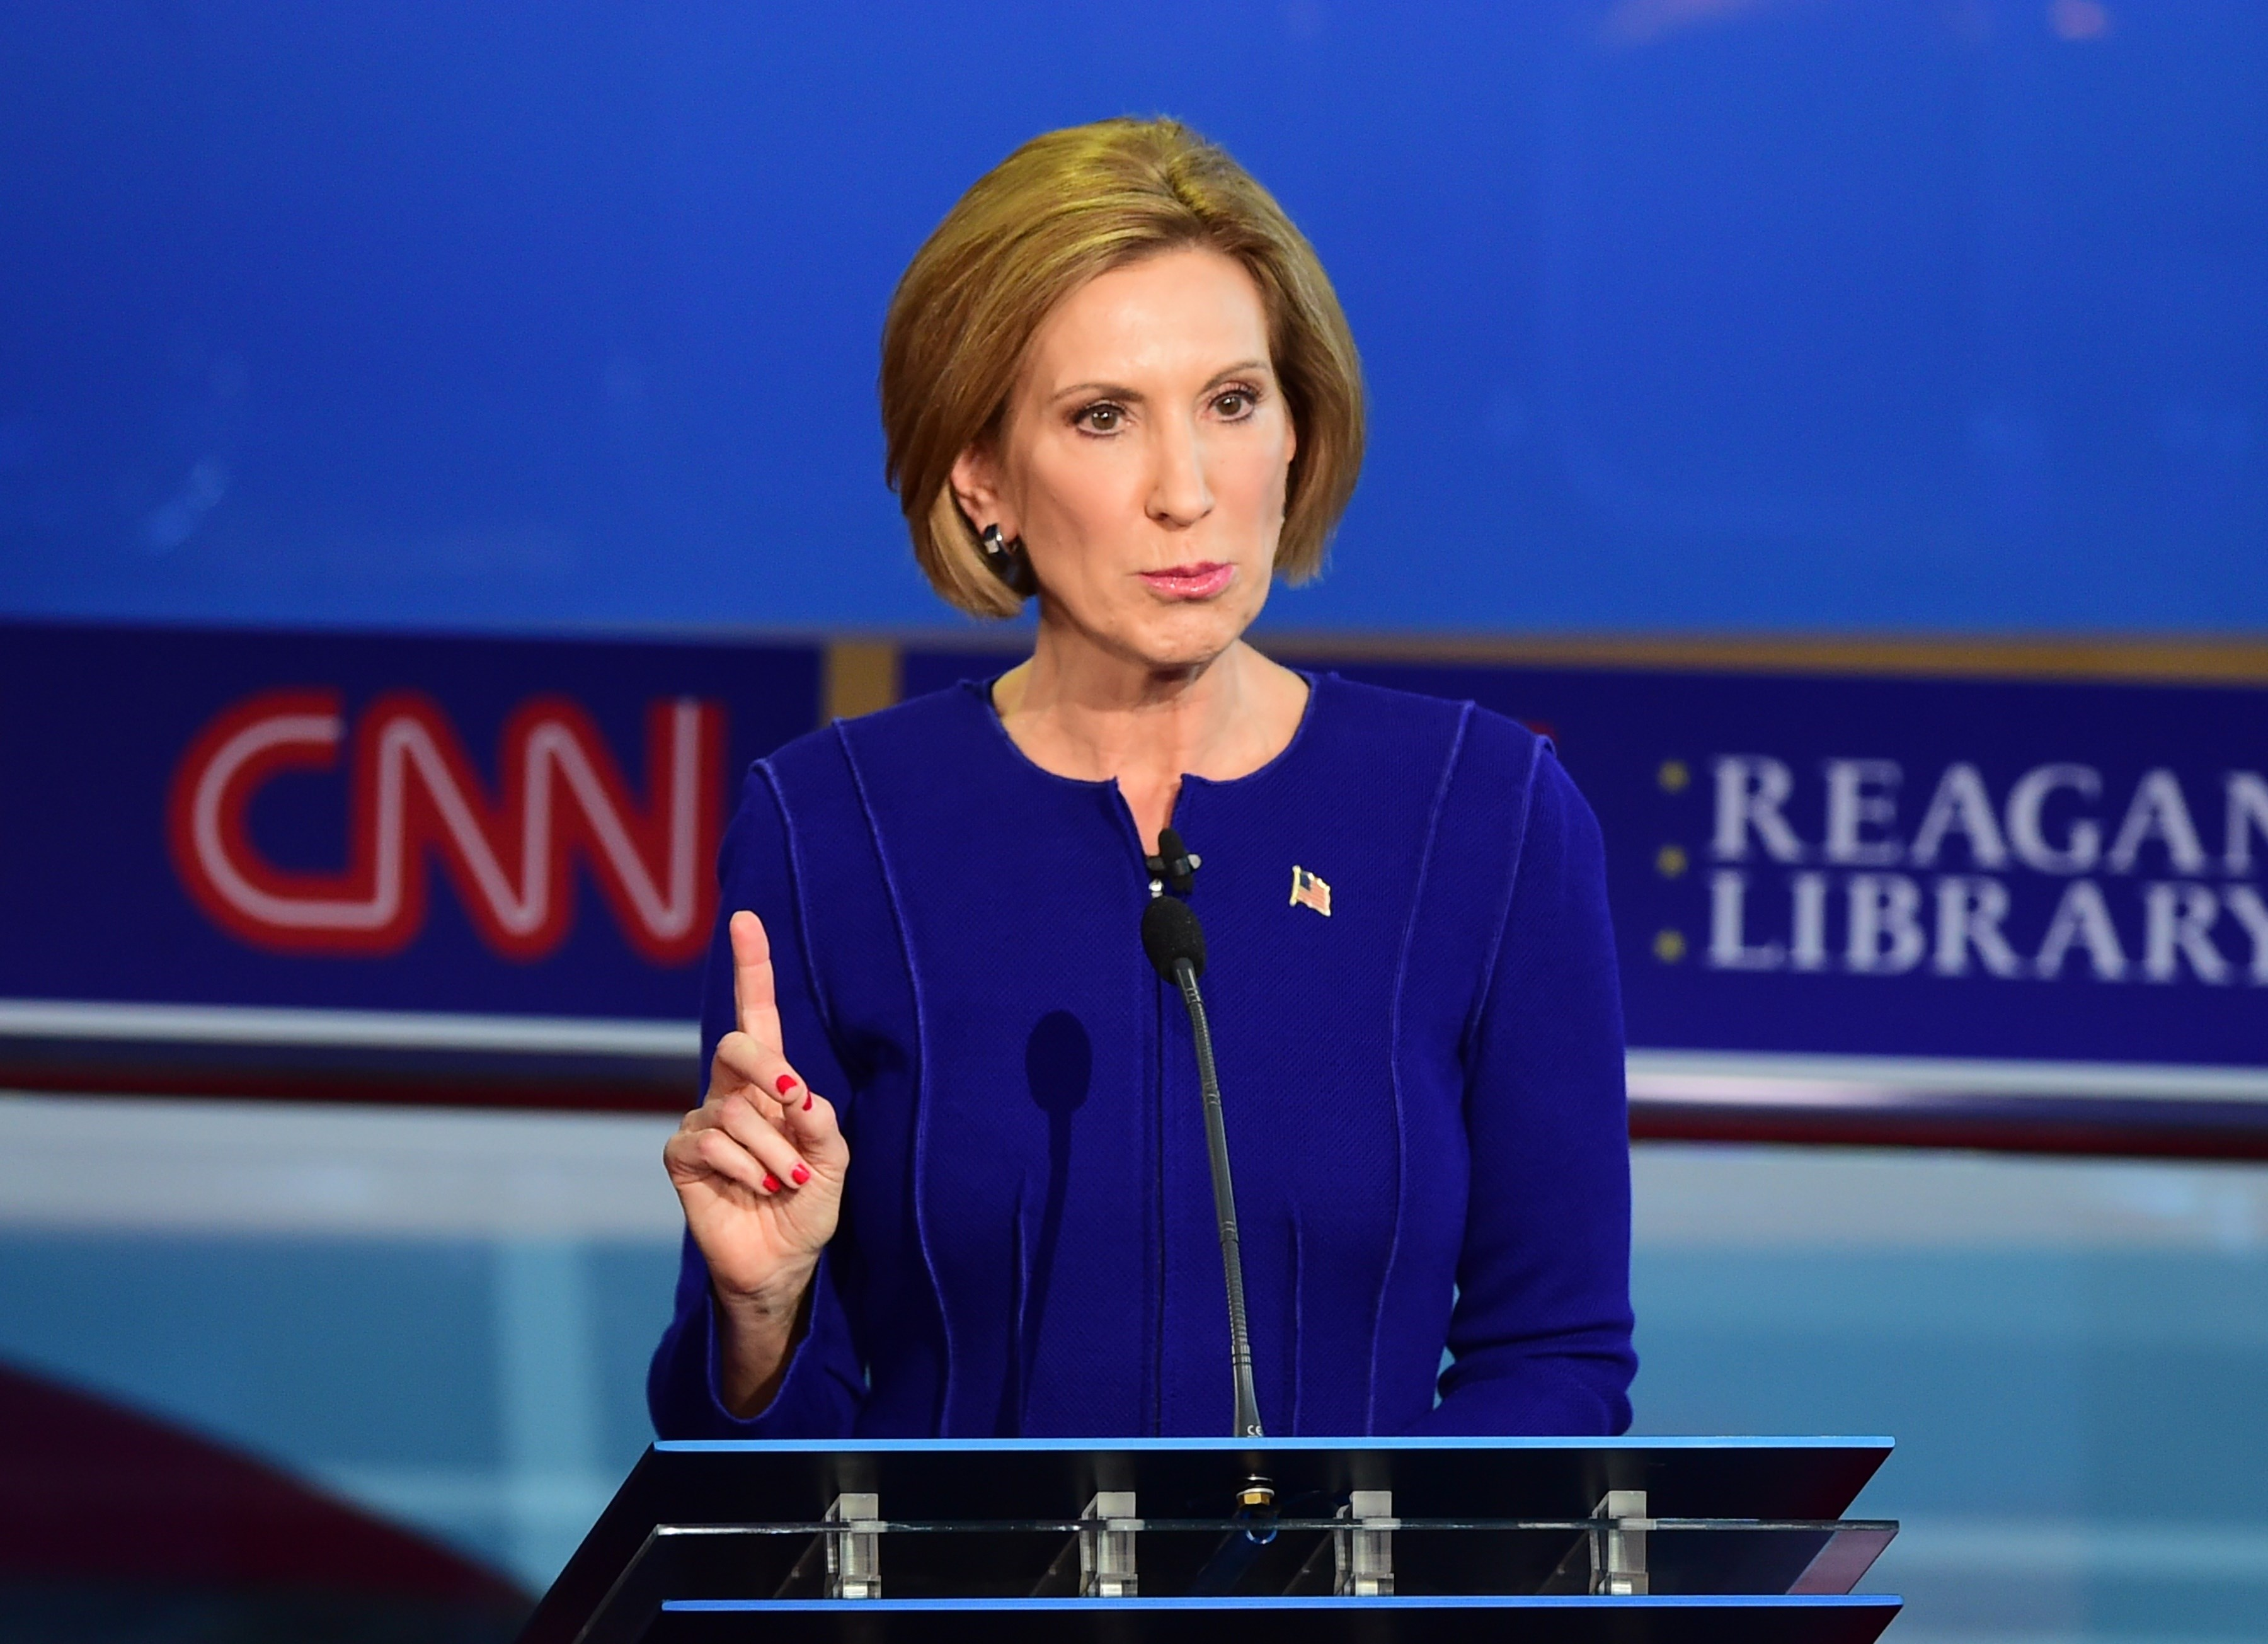 Republican presidential hopeful Carly Fiorina speaks during the Republican presidential debate at the Ronald Reagan Presidential Library in Simi Valley, California on Sept. 16, 2015.